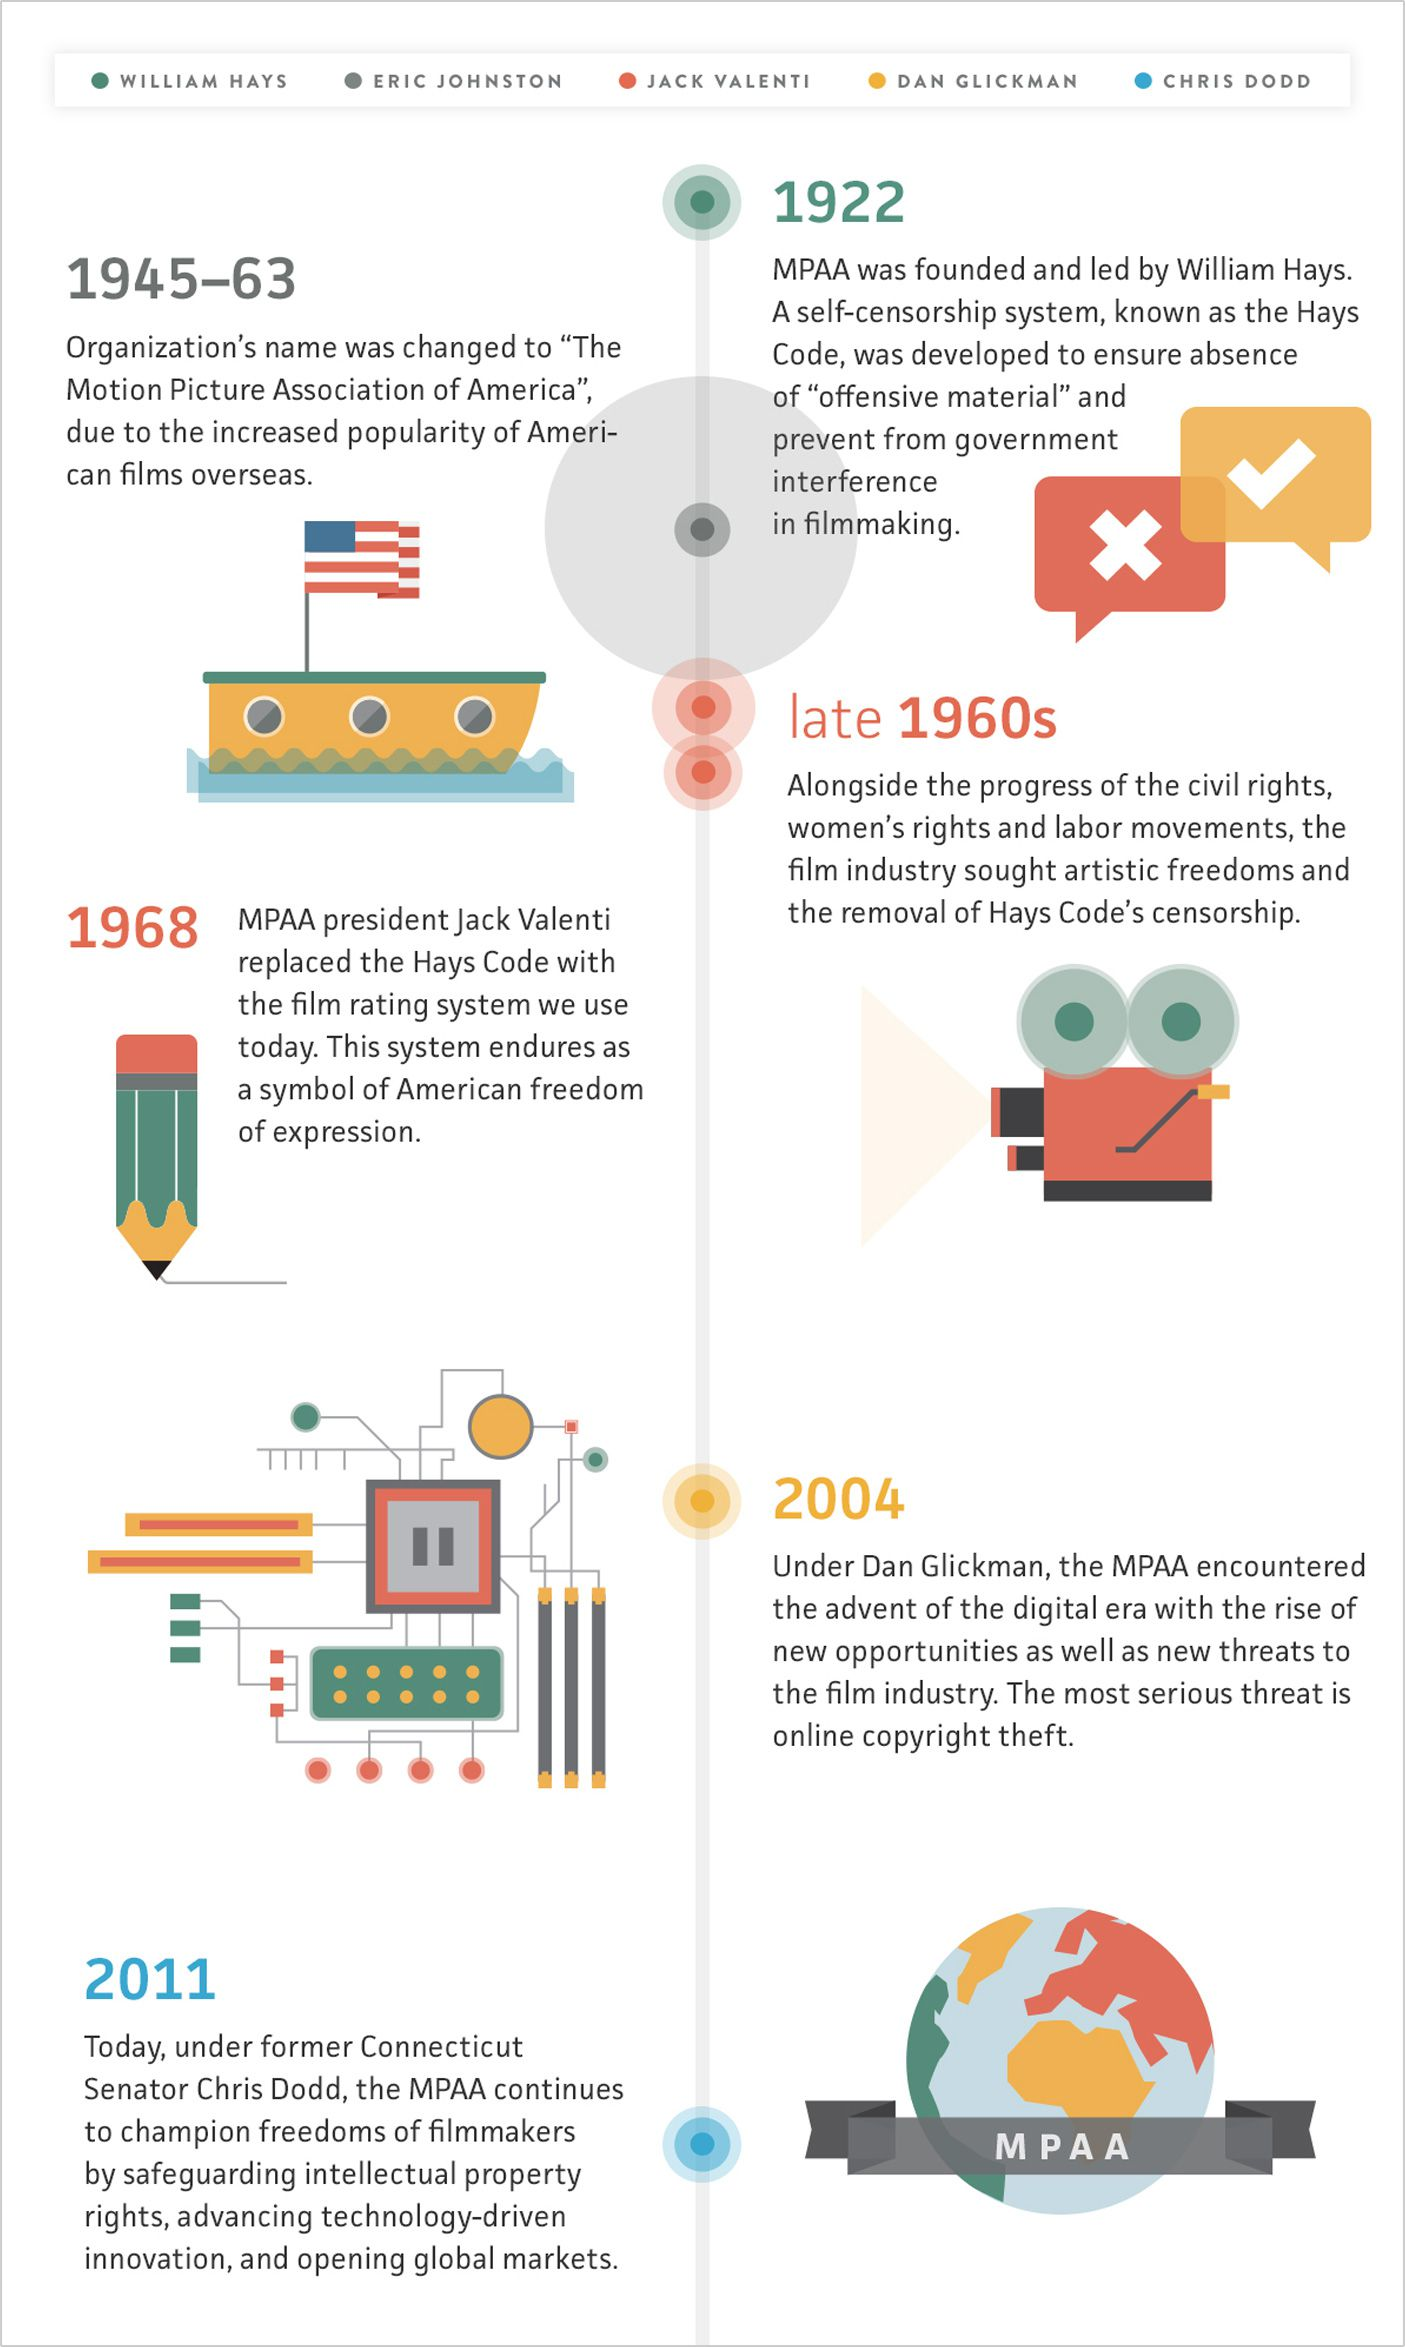 History of the MPAA